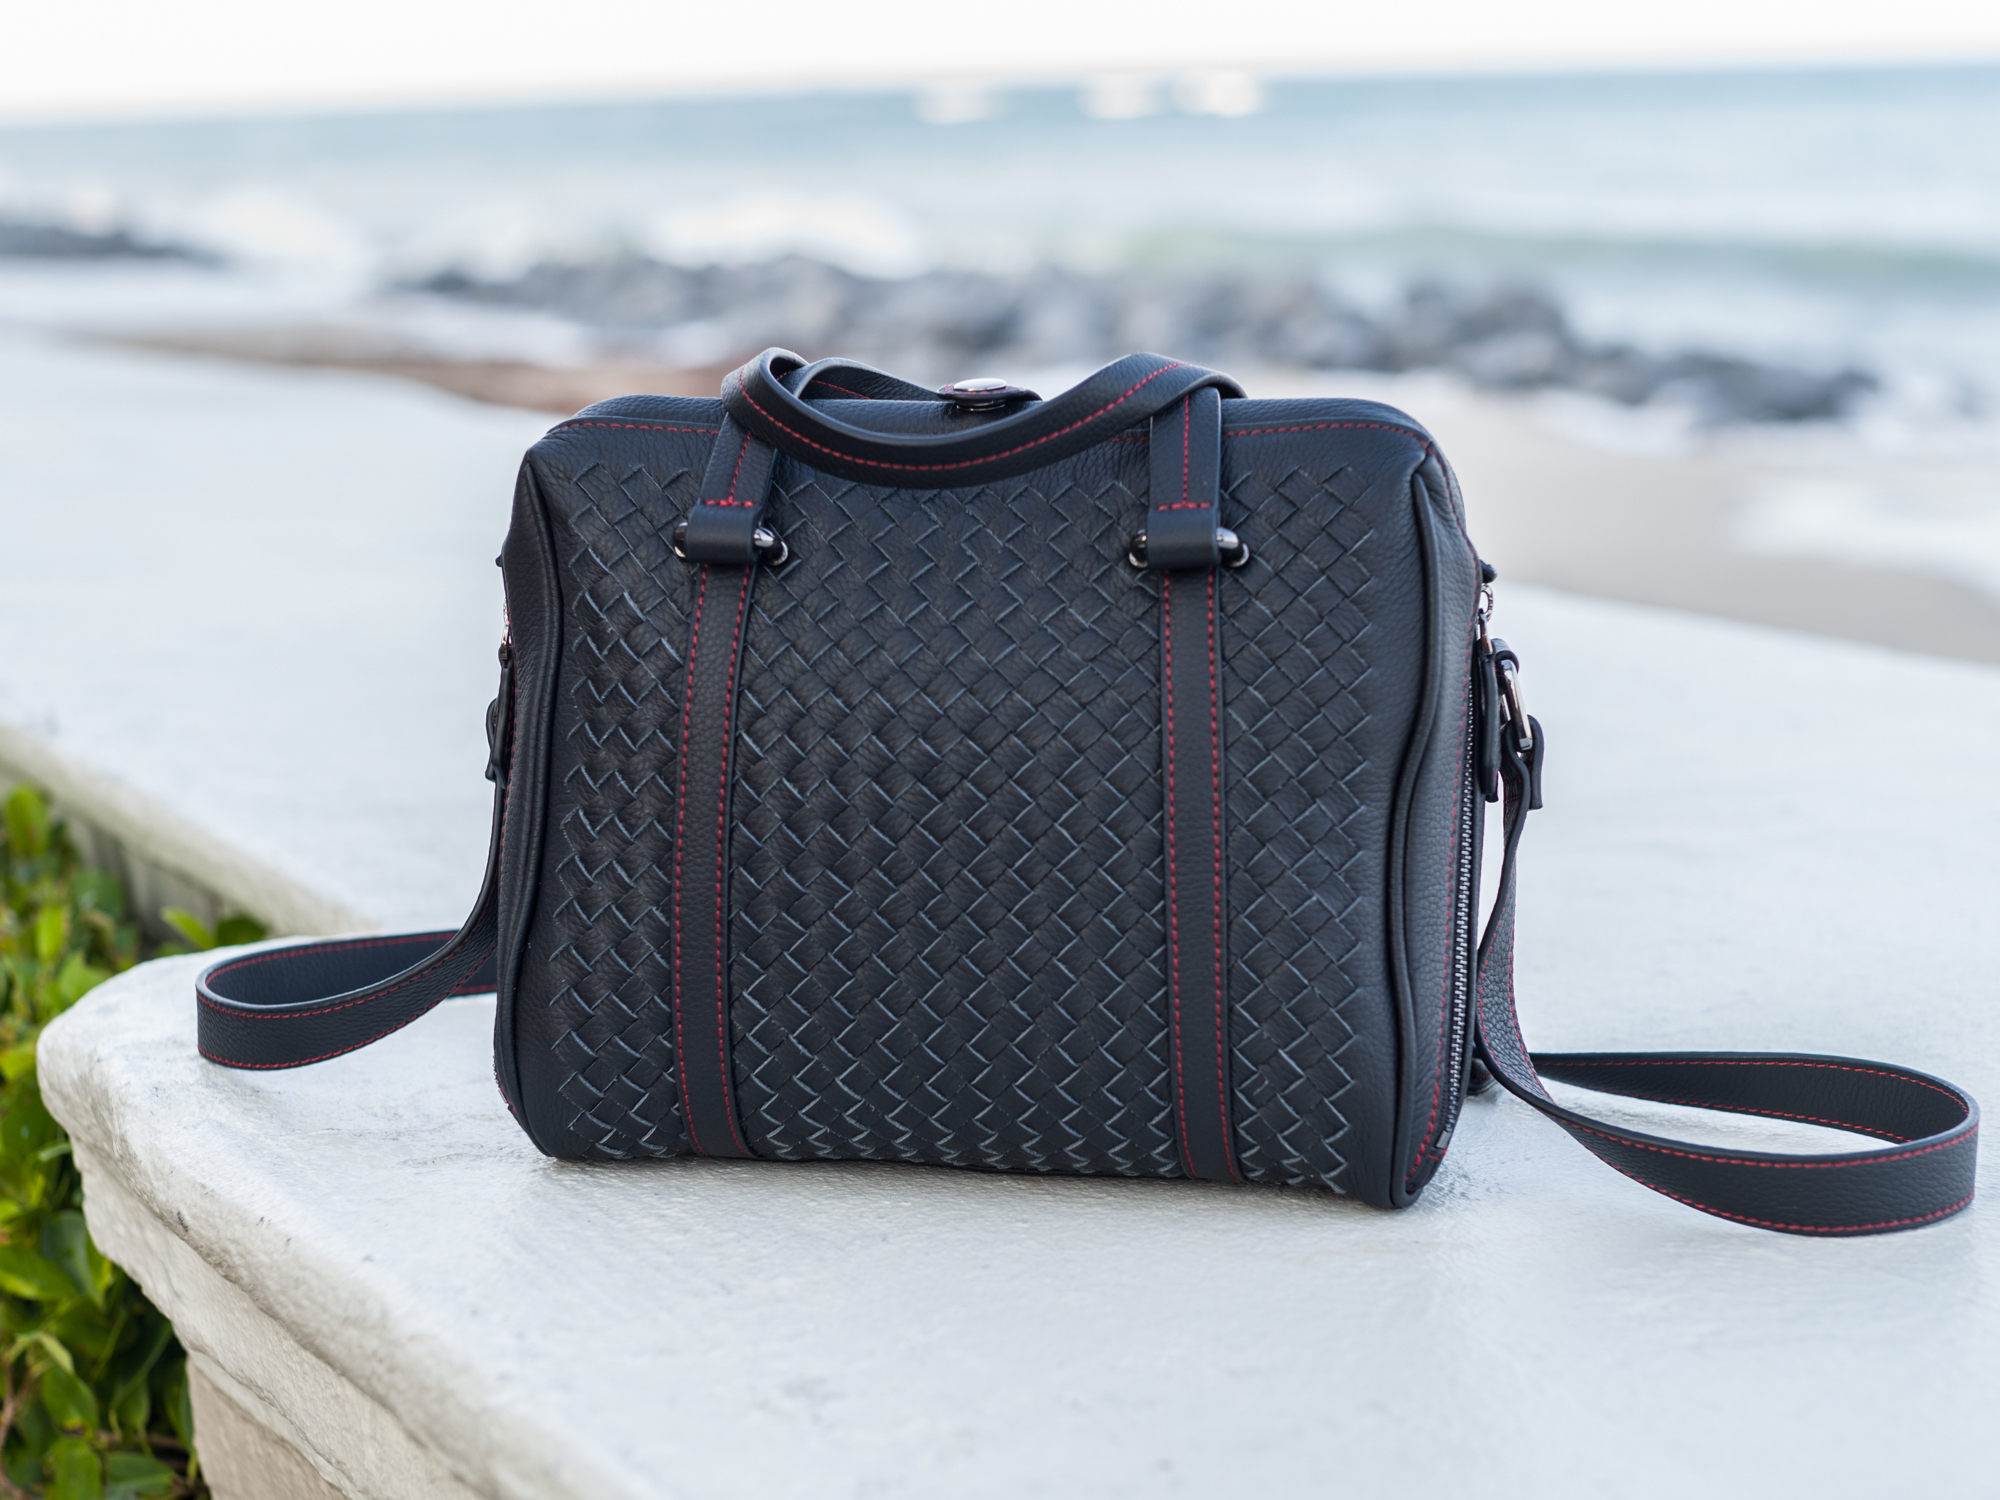 leica camera bag leather quilted